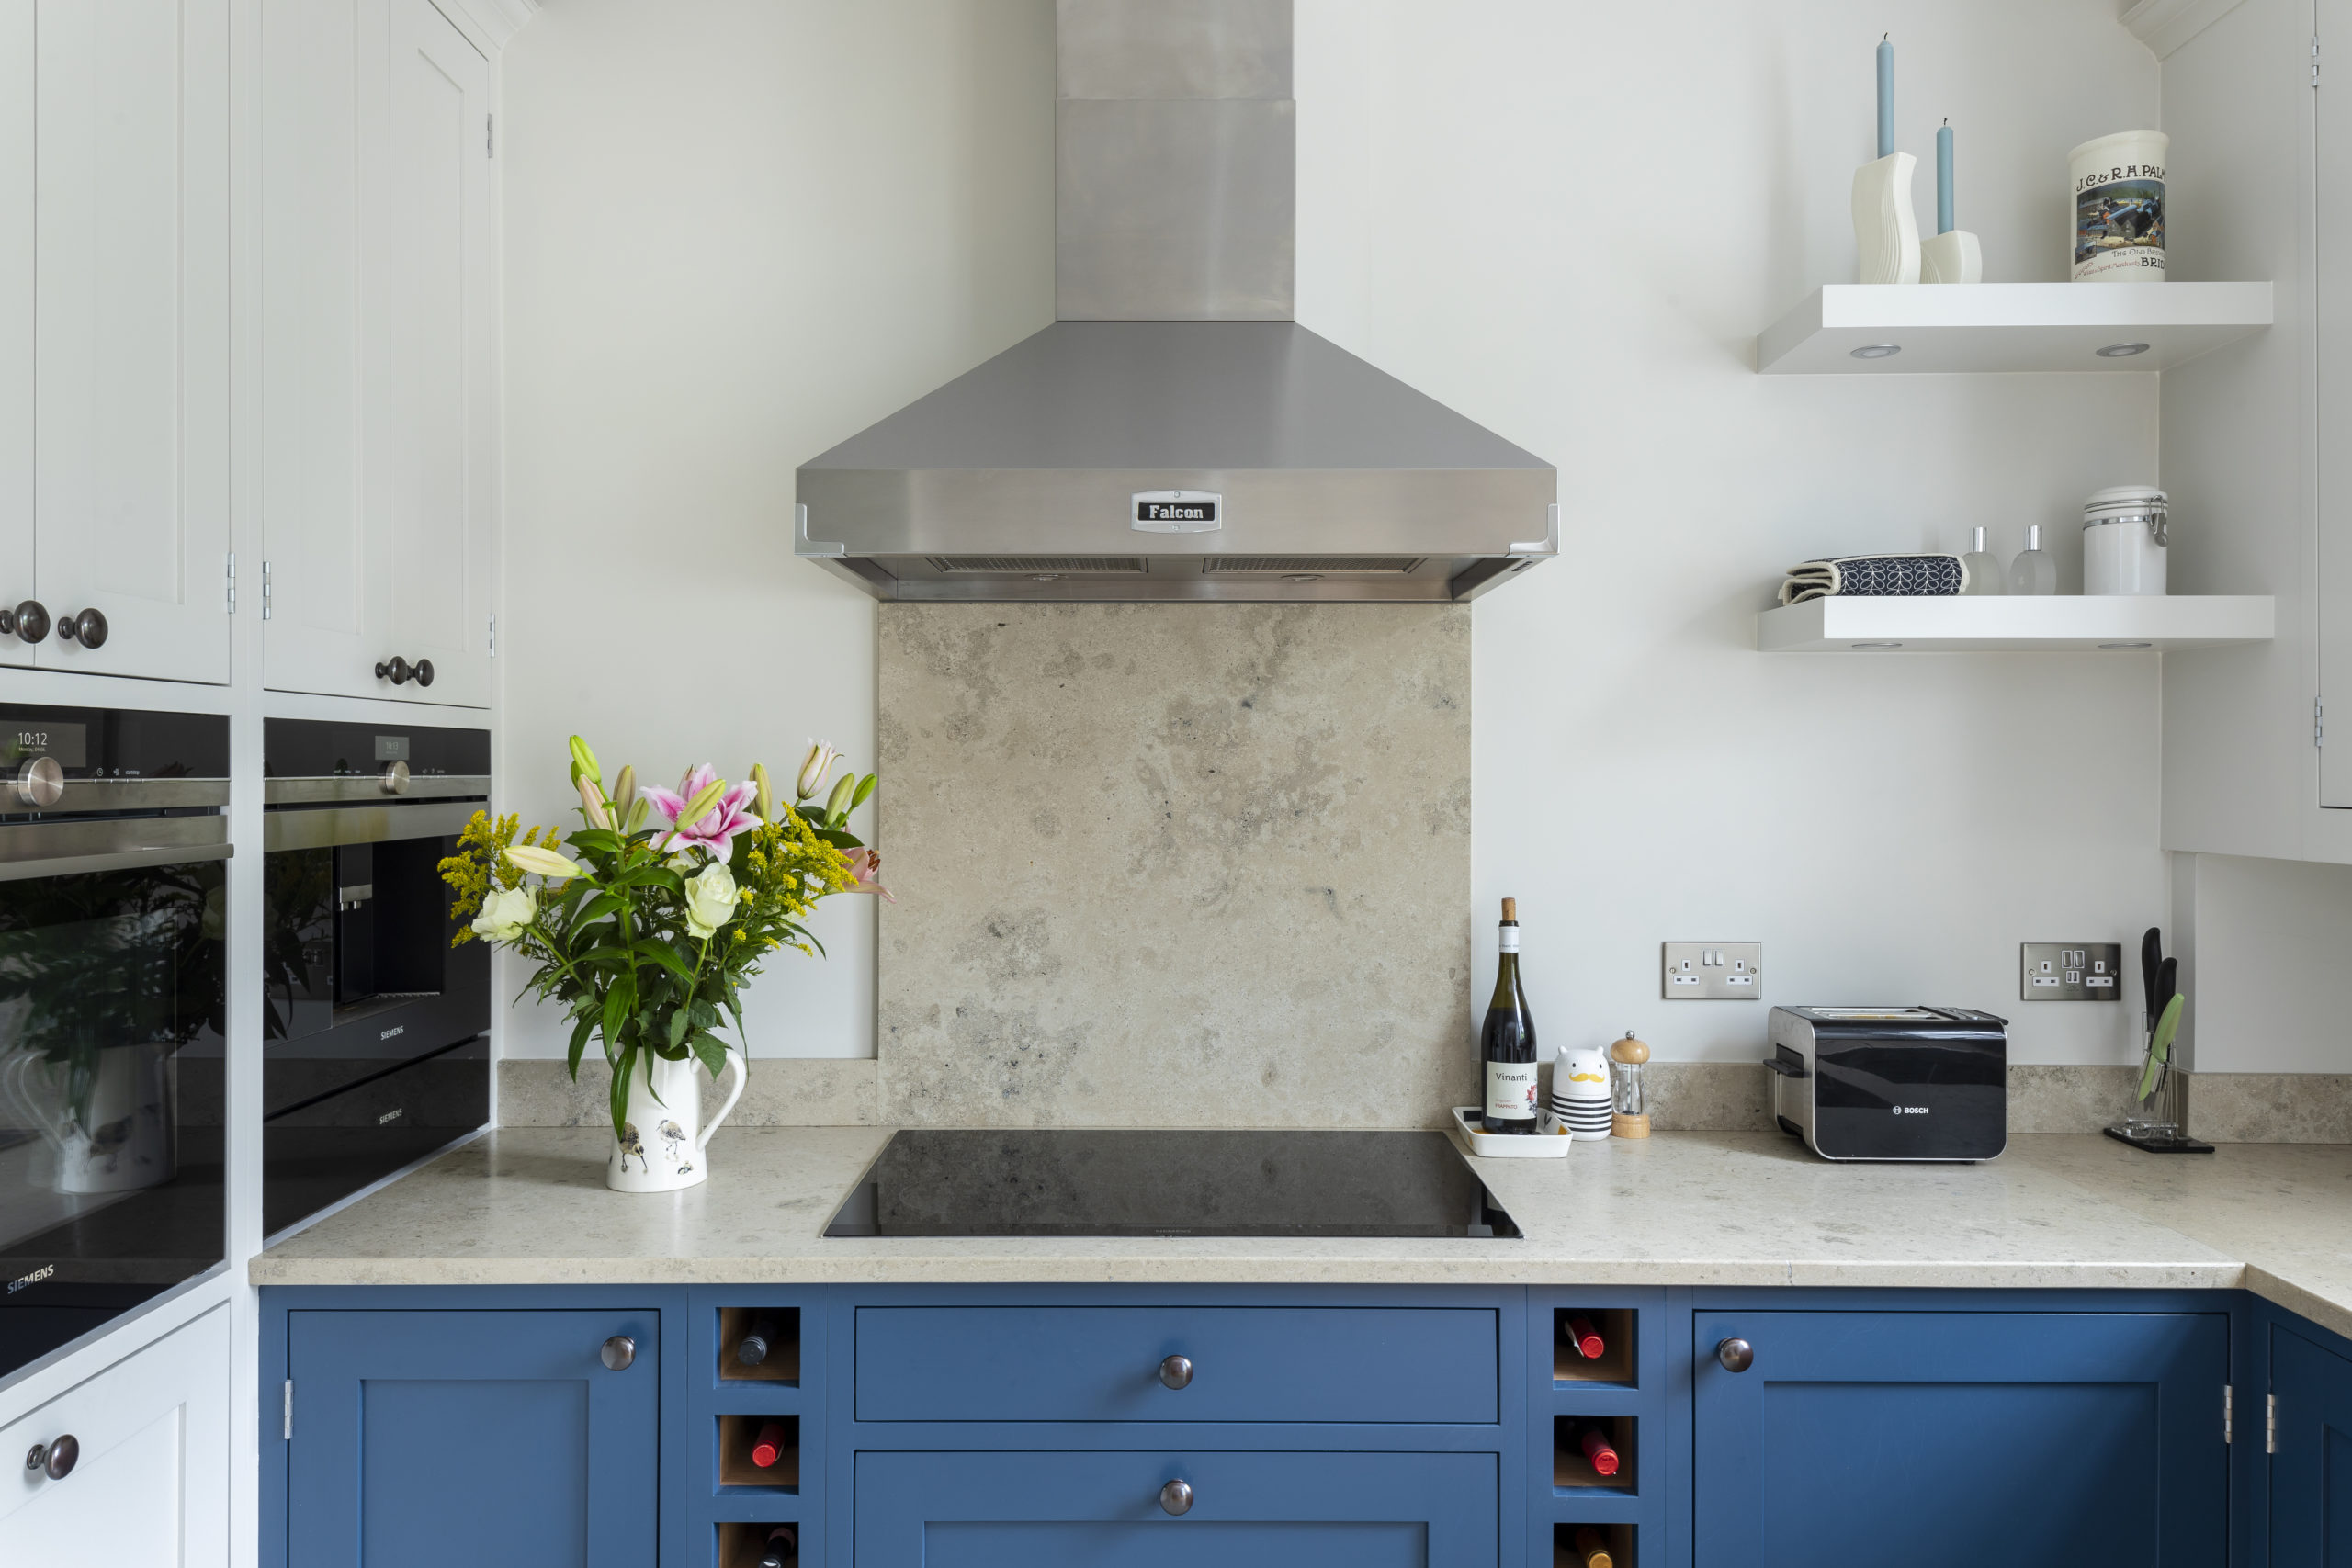 Framed shaker kitchen hand painted in Farrow & Ball Stiffkey Blue and Ammonite with Lime Stone worktops